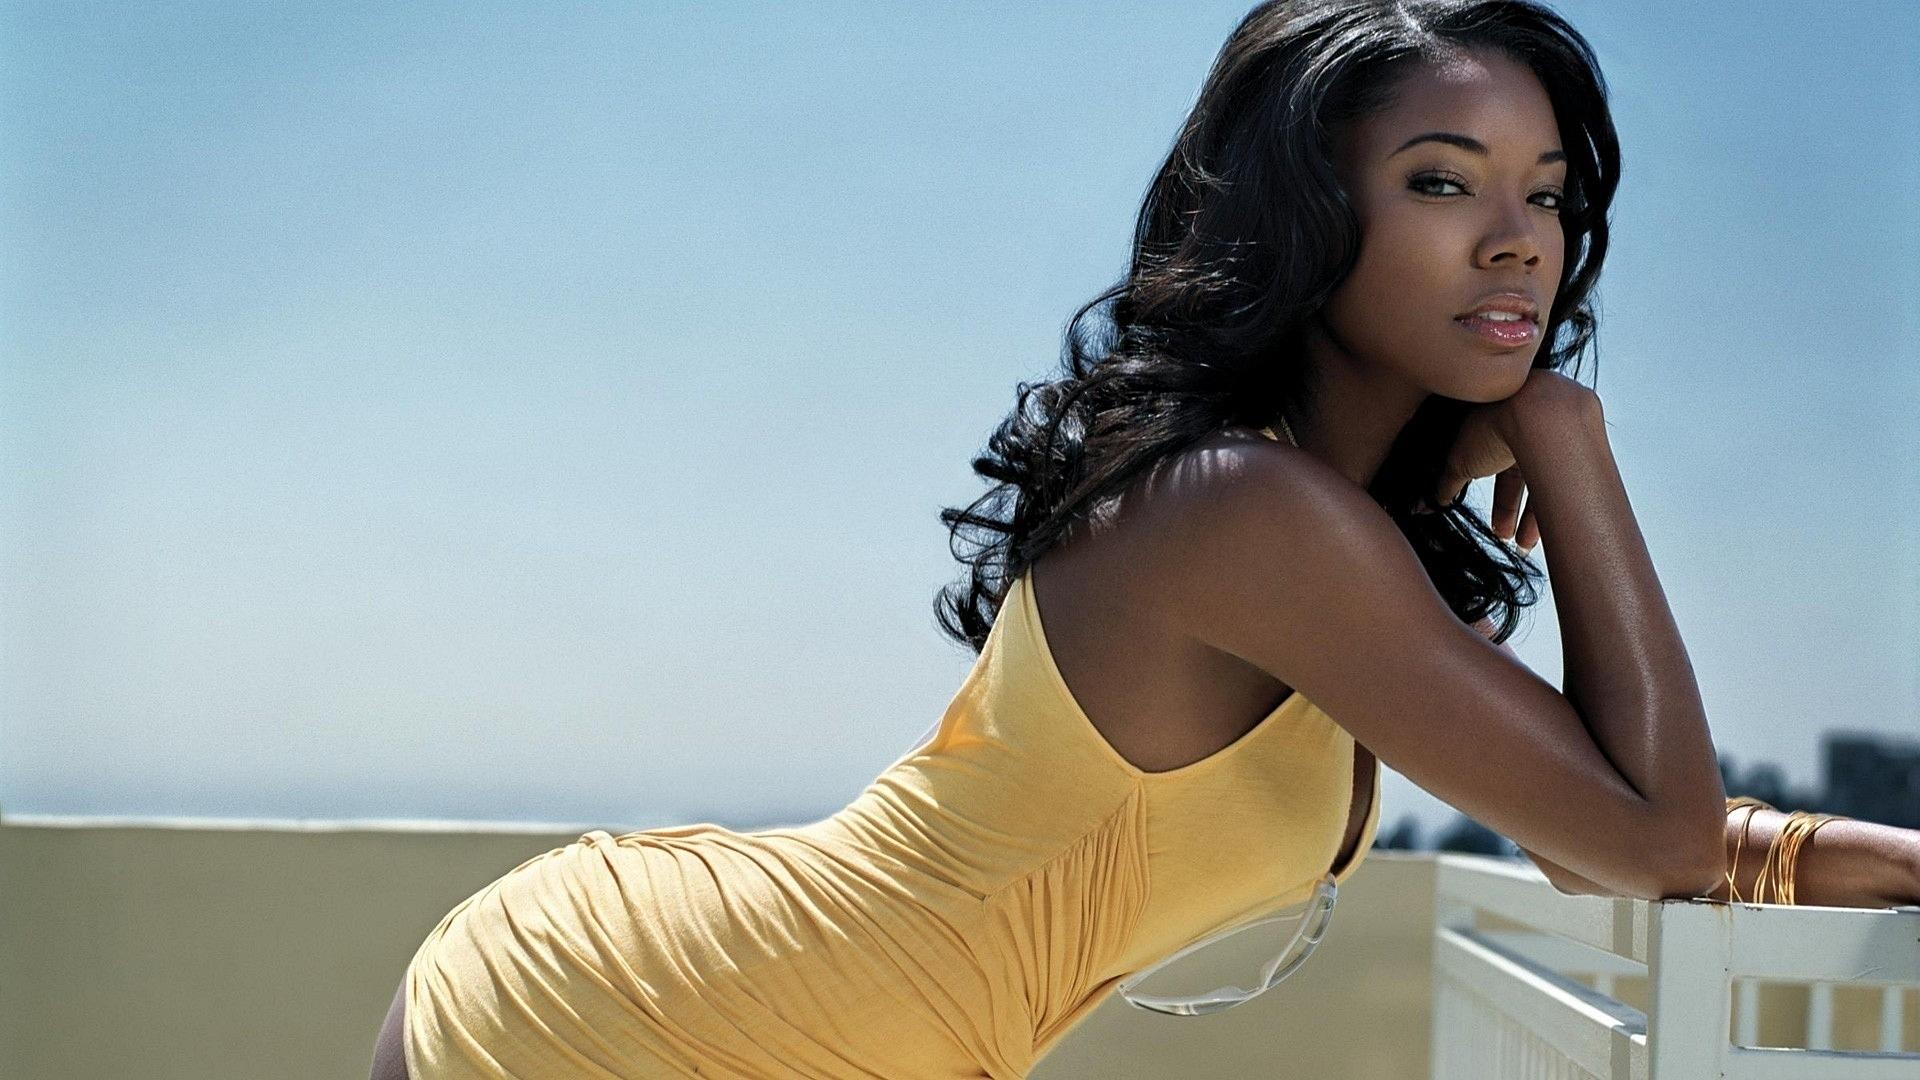 1920x1080 - Gabrielle Union Wallpapers 23